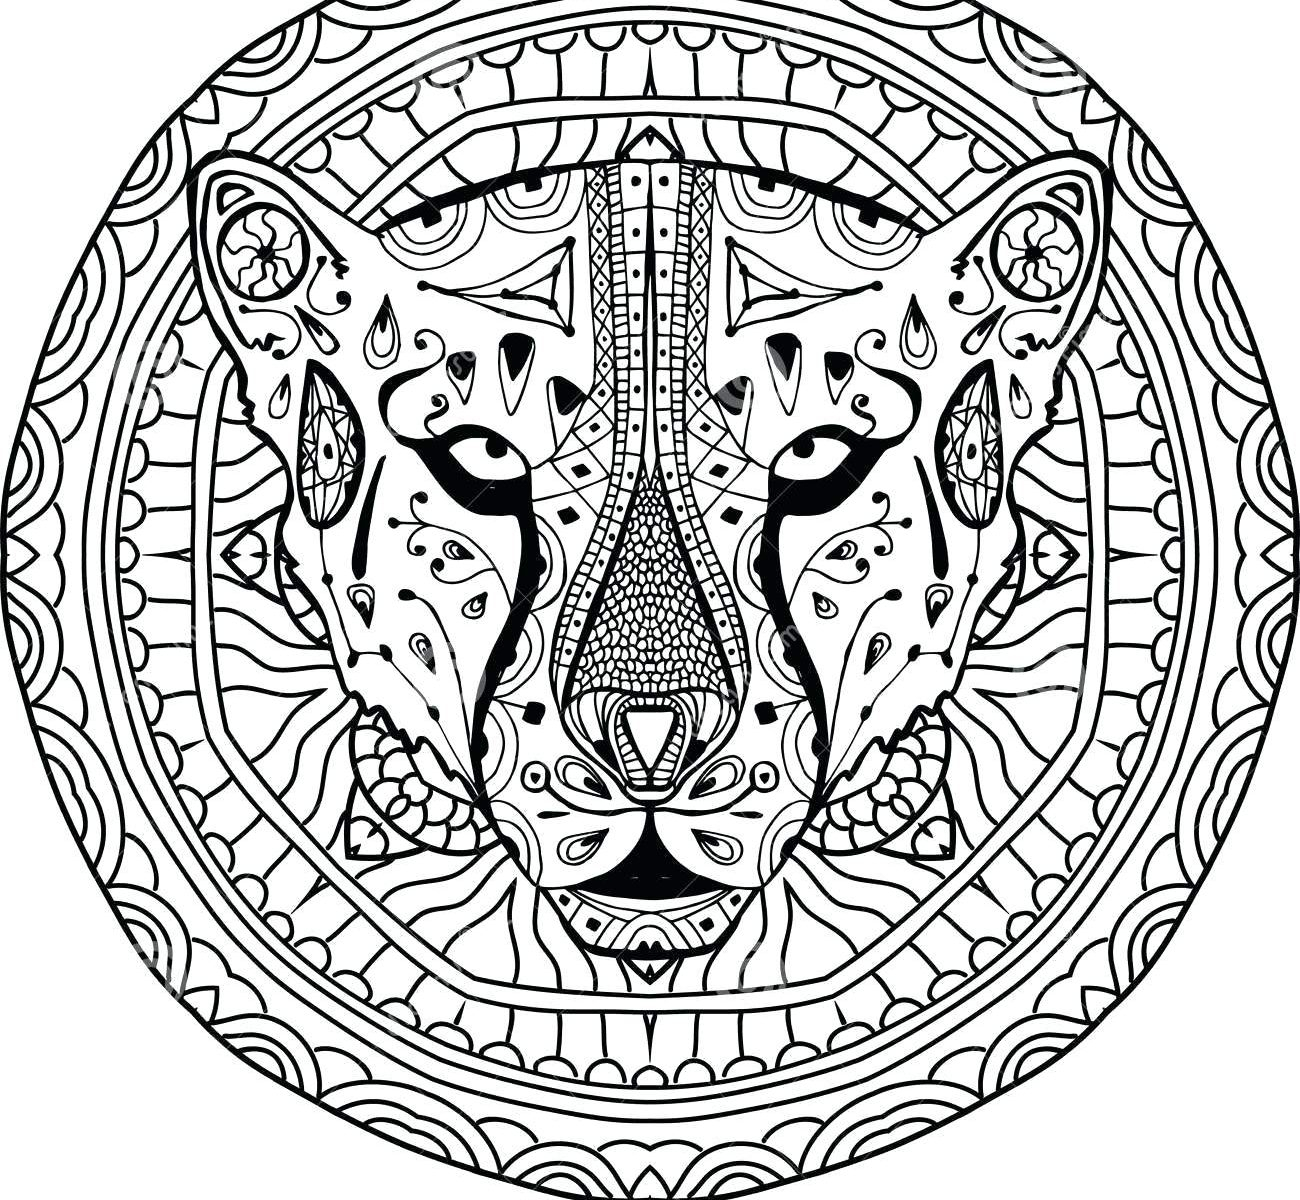 1300x1200 New Cheetah Coloring Page Collection Printable Coloring Sheet